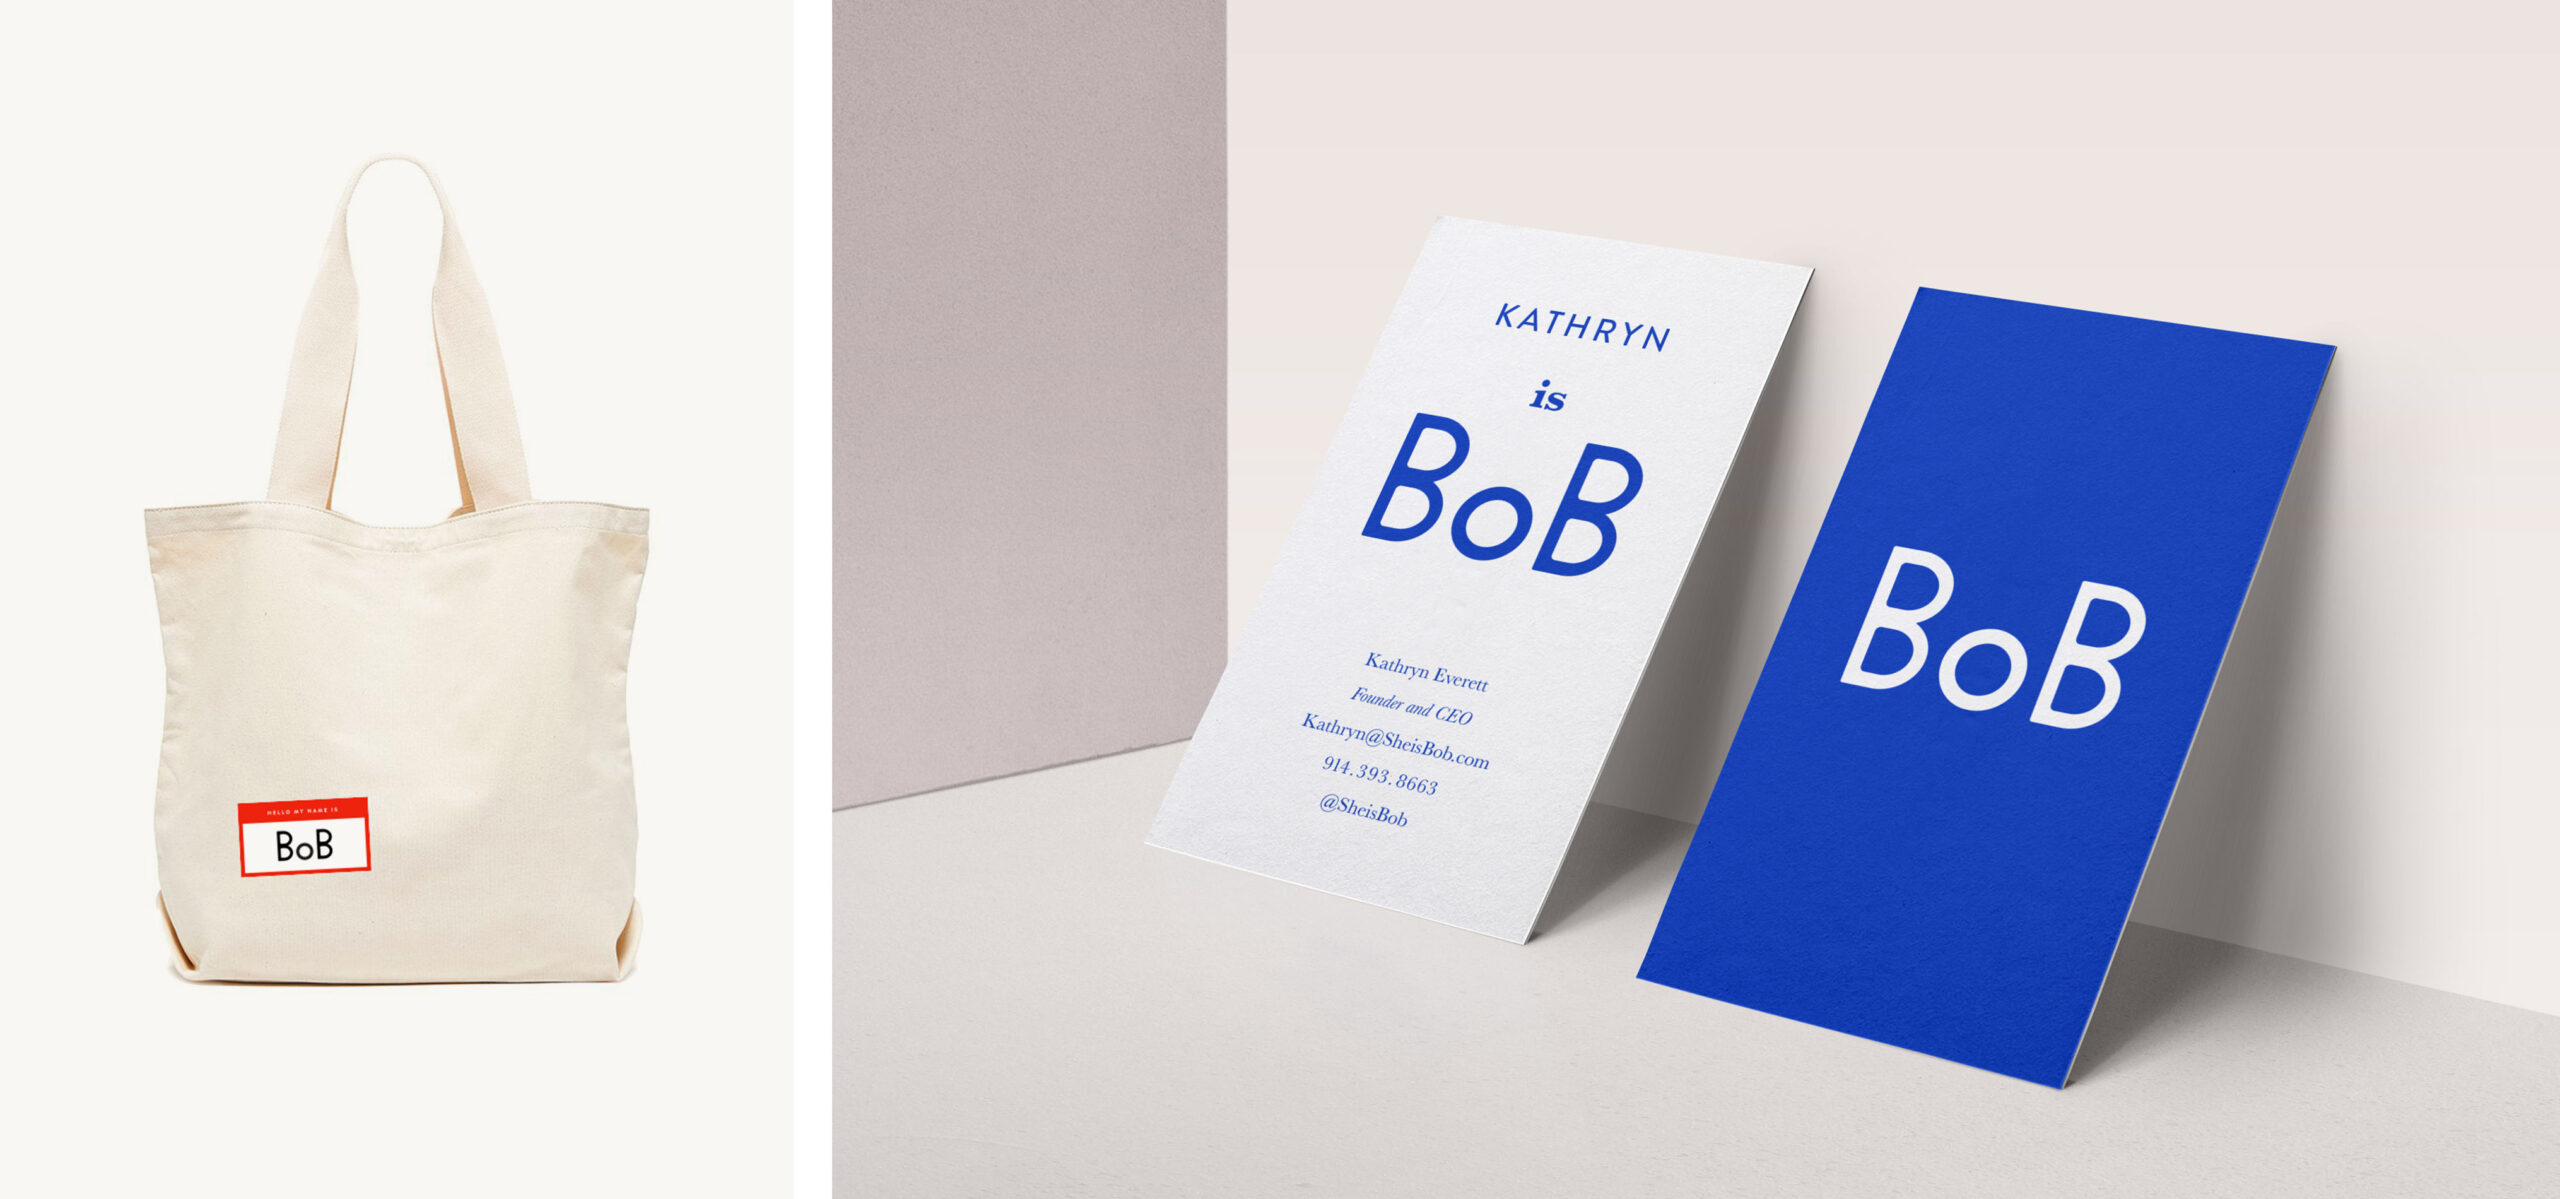 Site_BOB_business card and tote